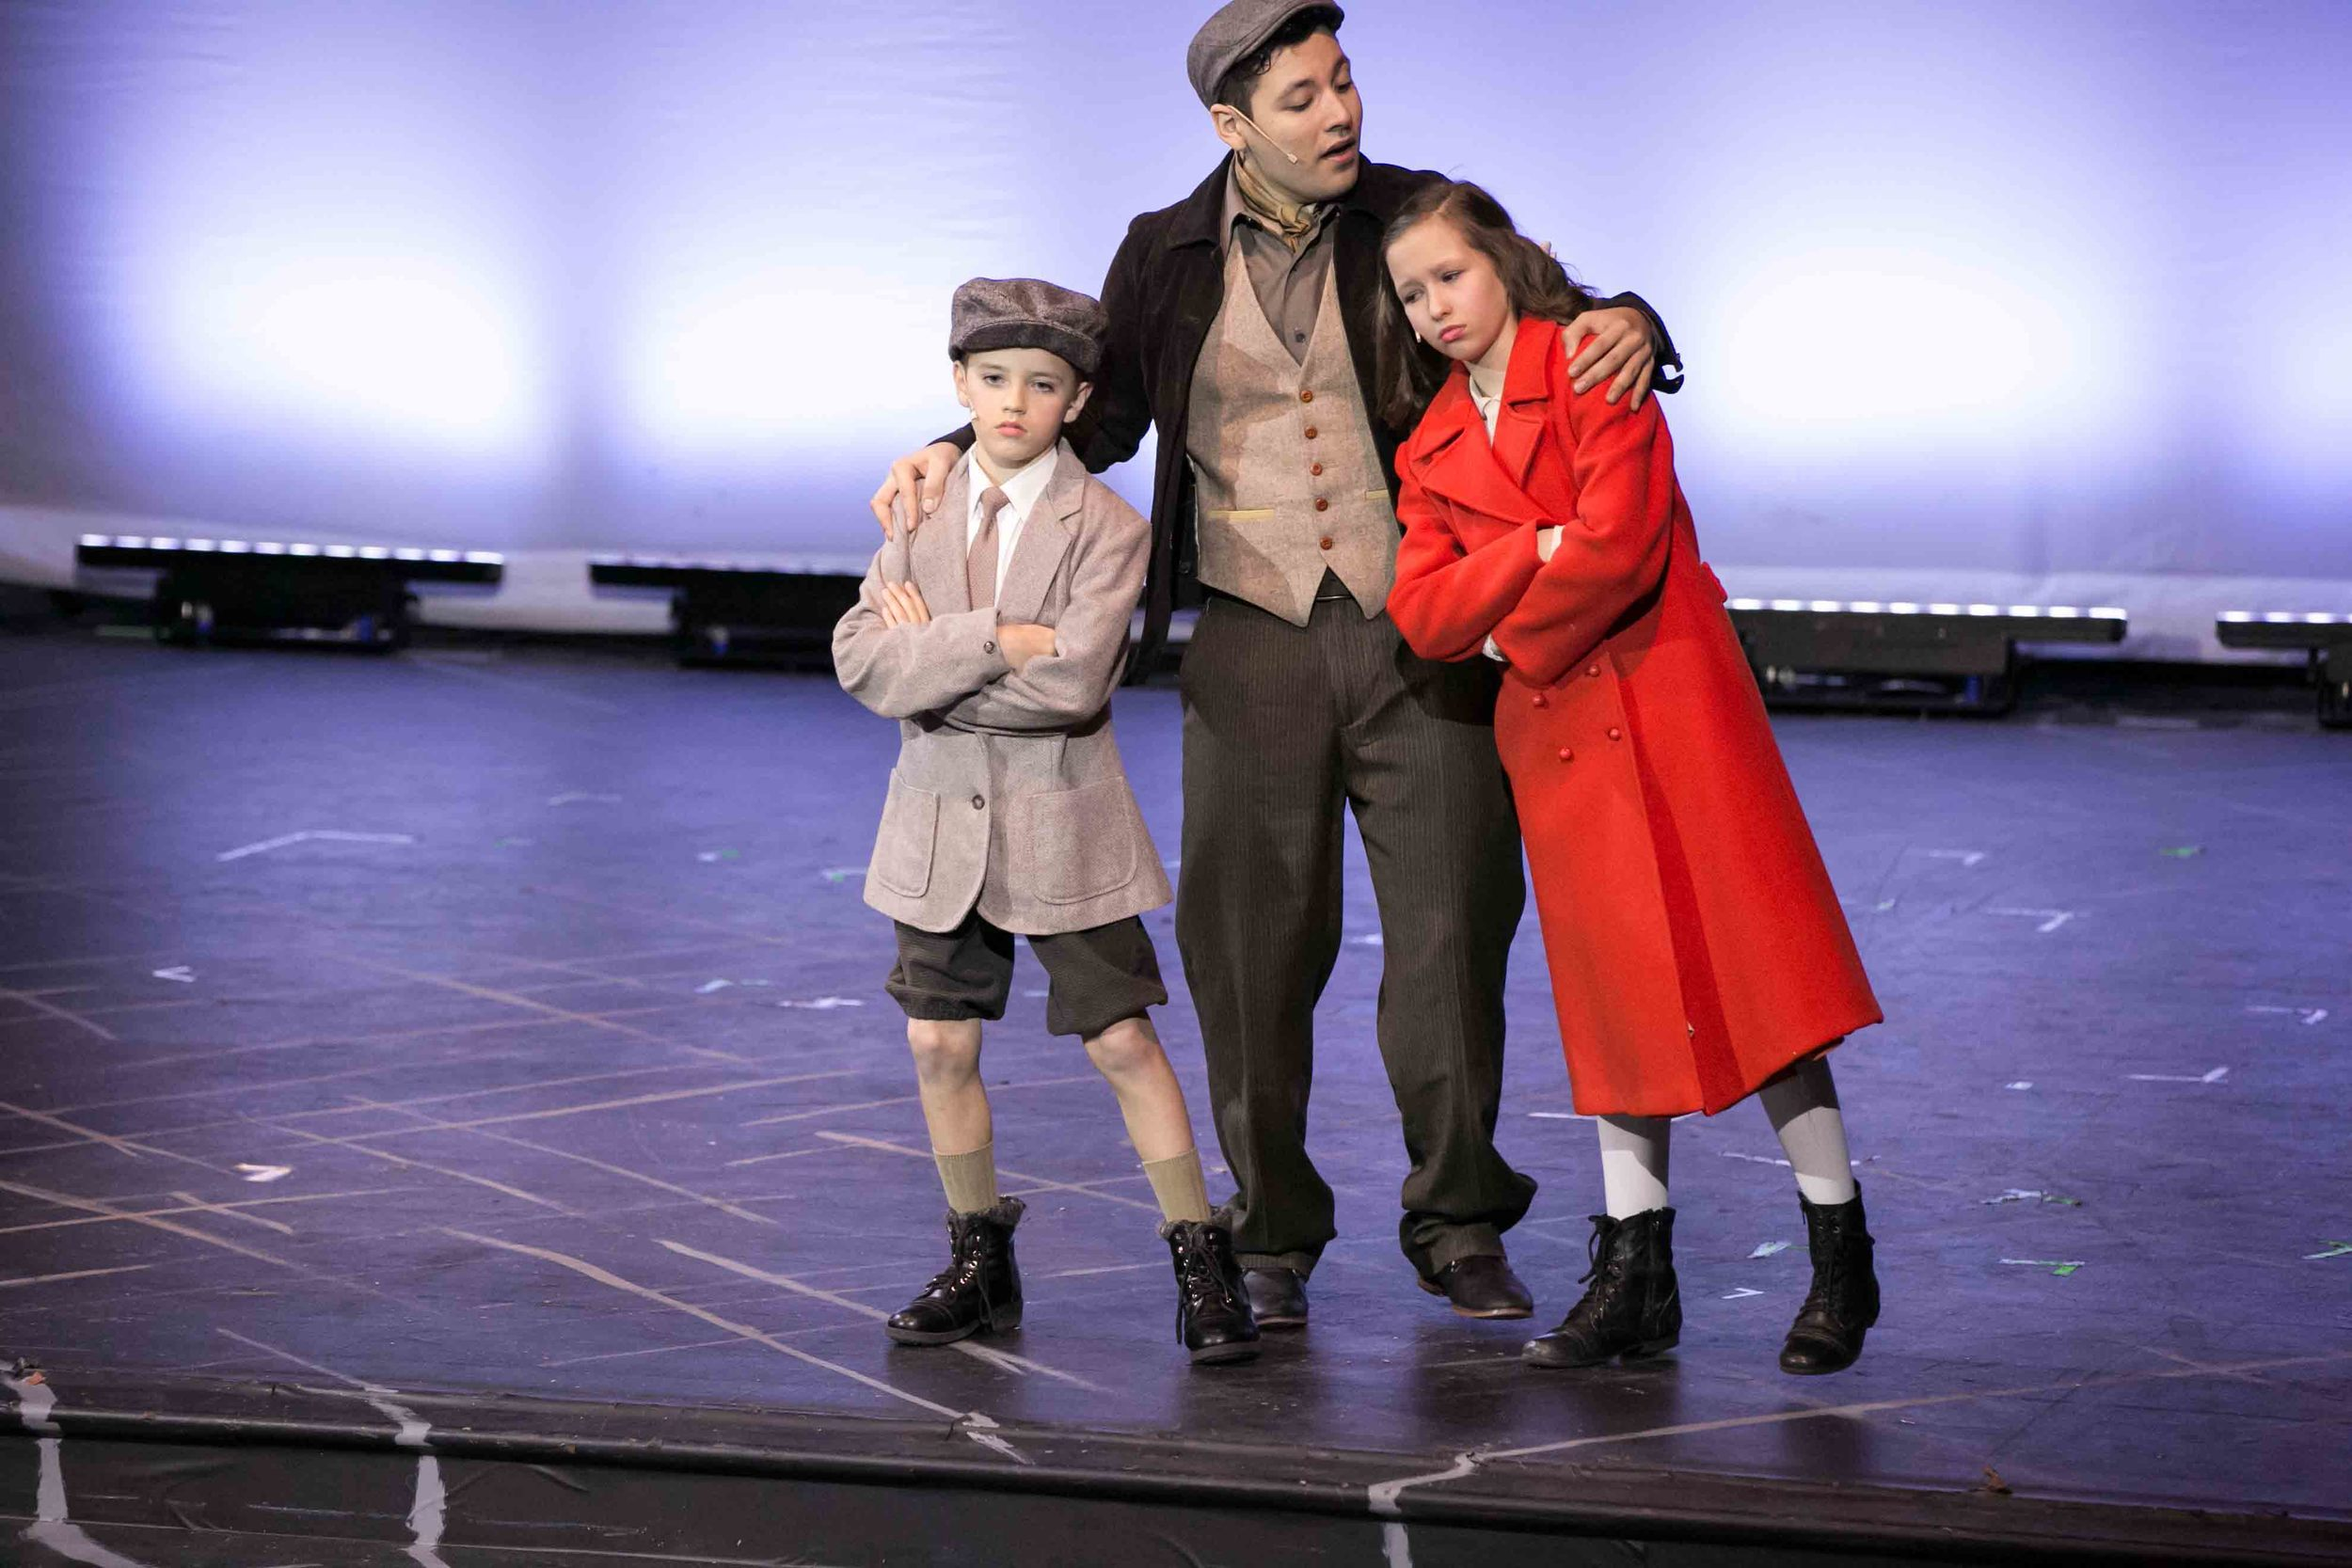 2-4-16 Mary Poppins Proper Cast 0104.jpg